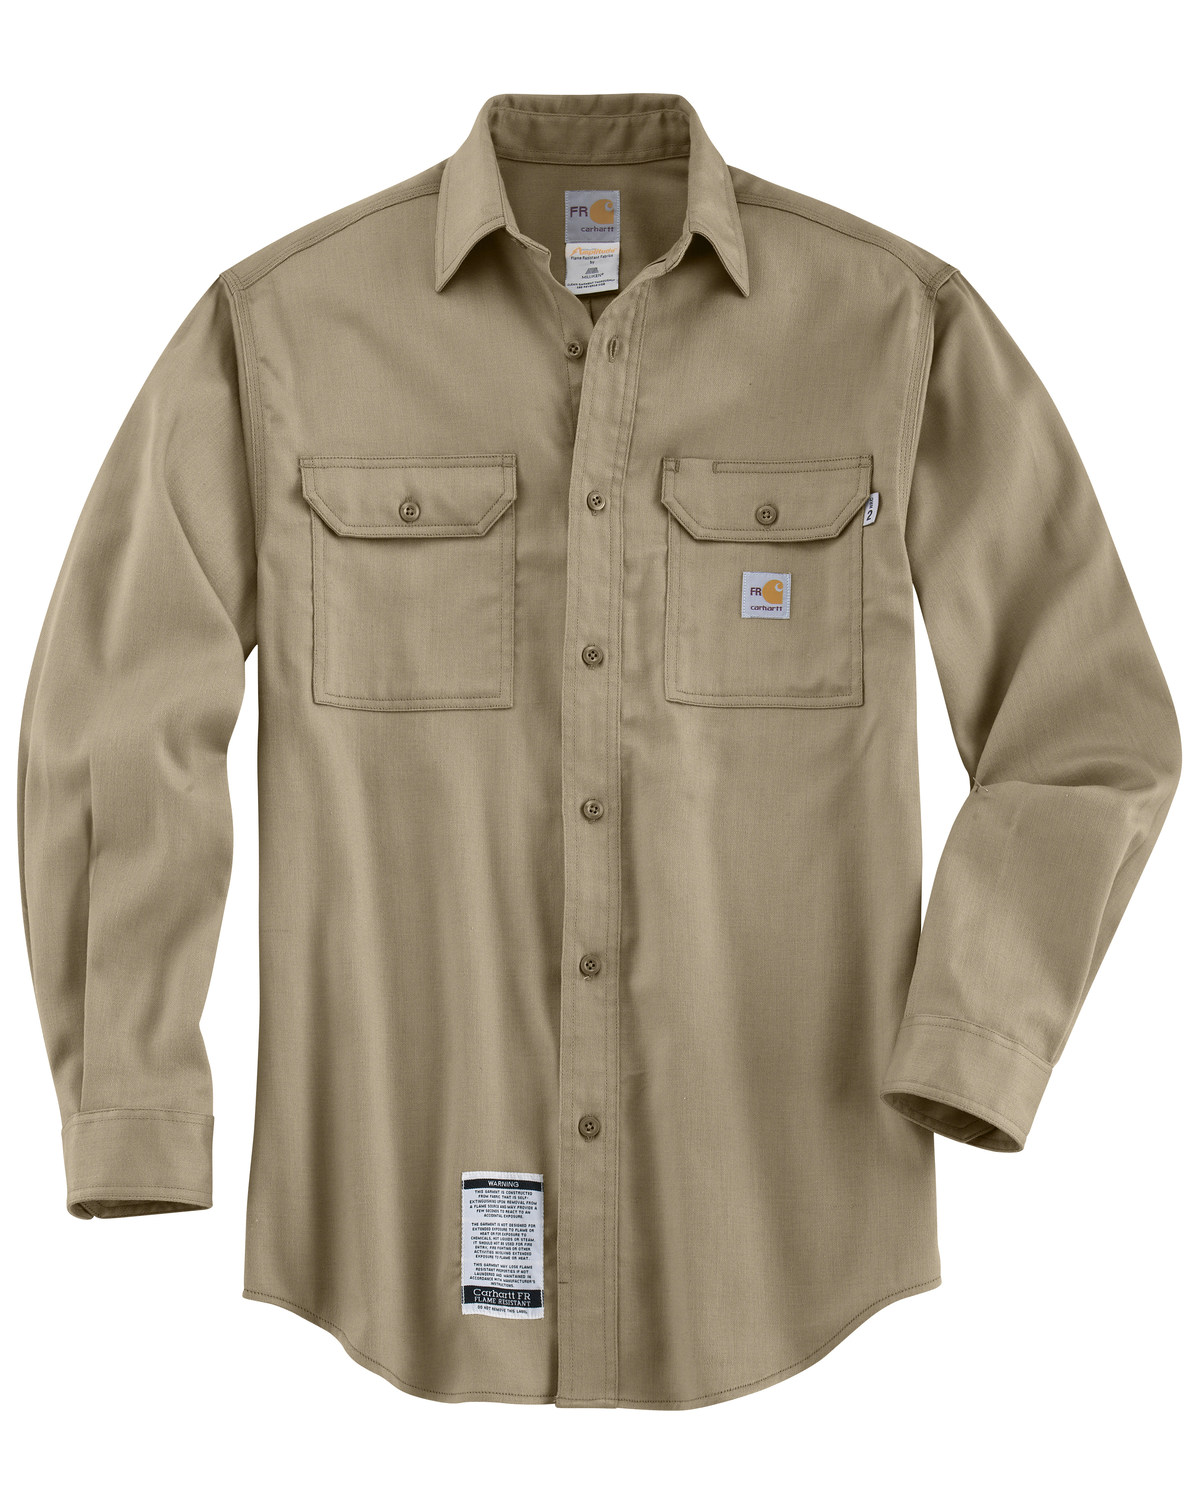 a200630acbb6 Carhartt Men s Long Sleeve Flame Resistant Dry Twill Work Shirt ...